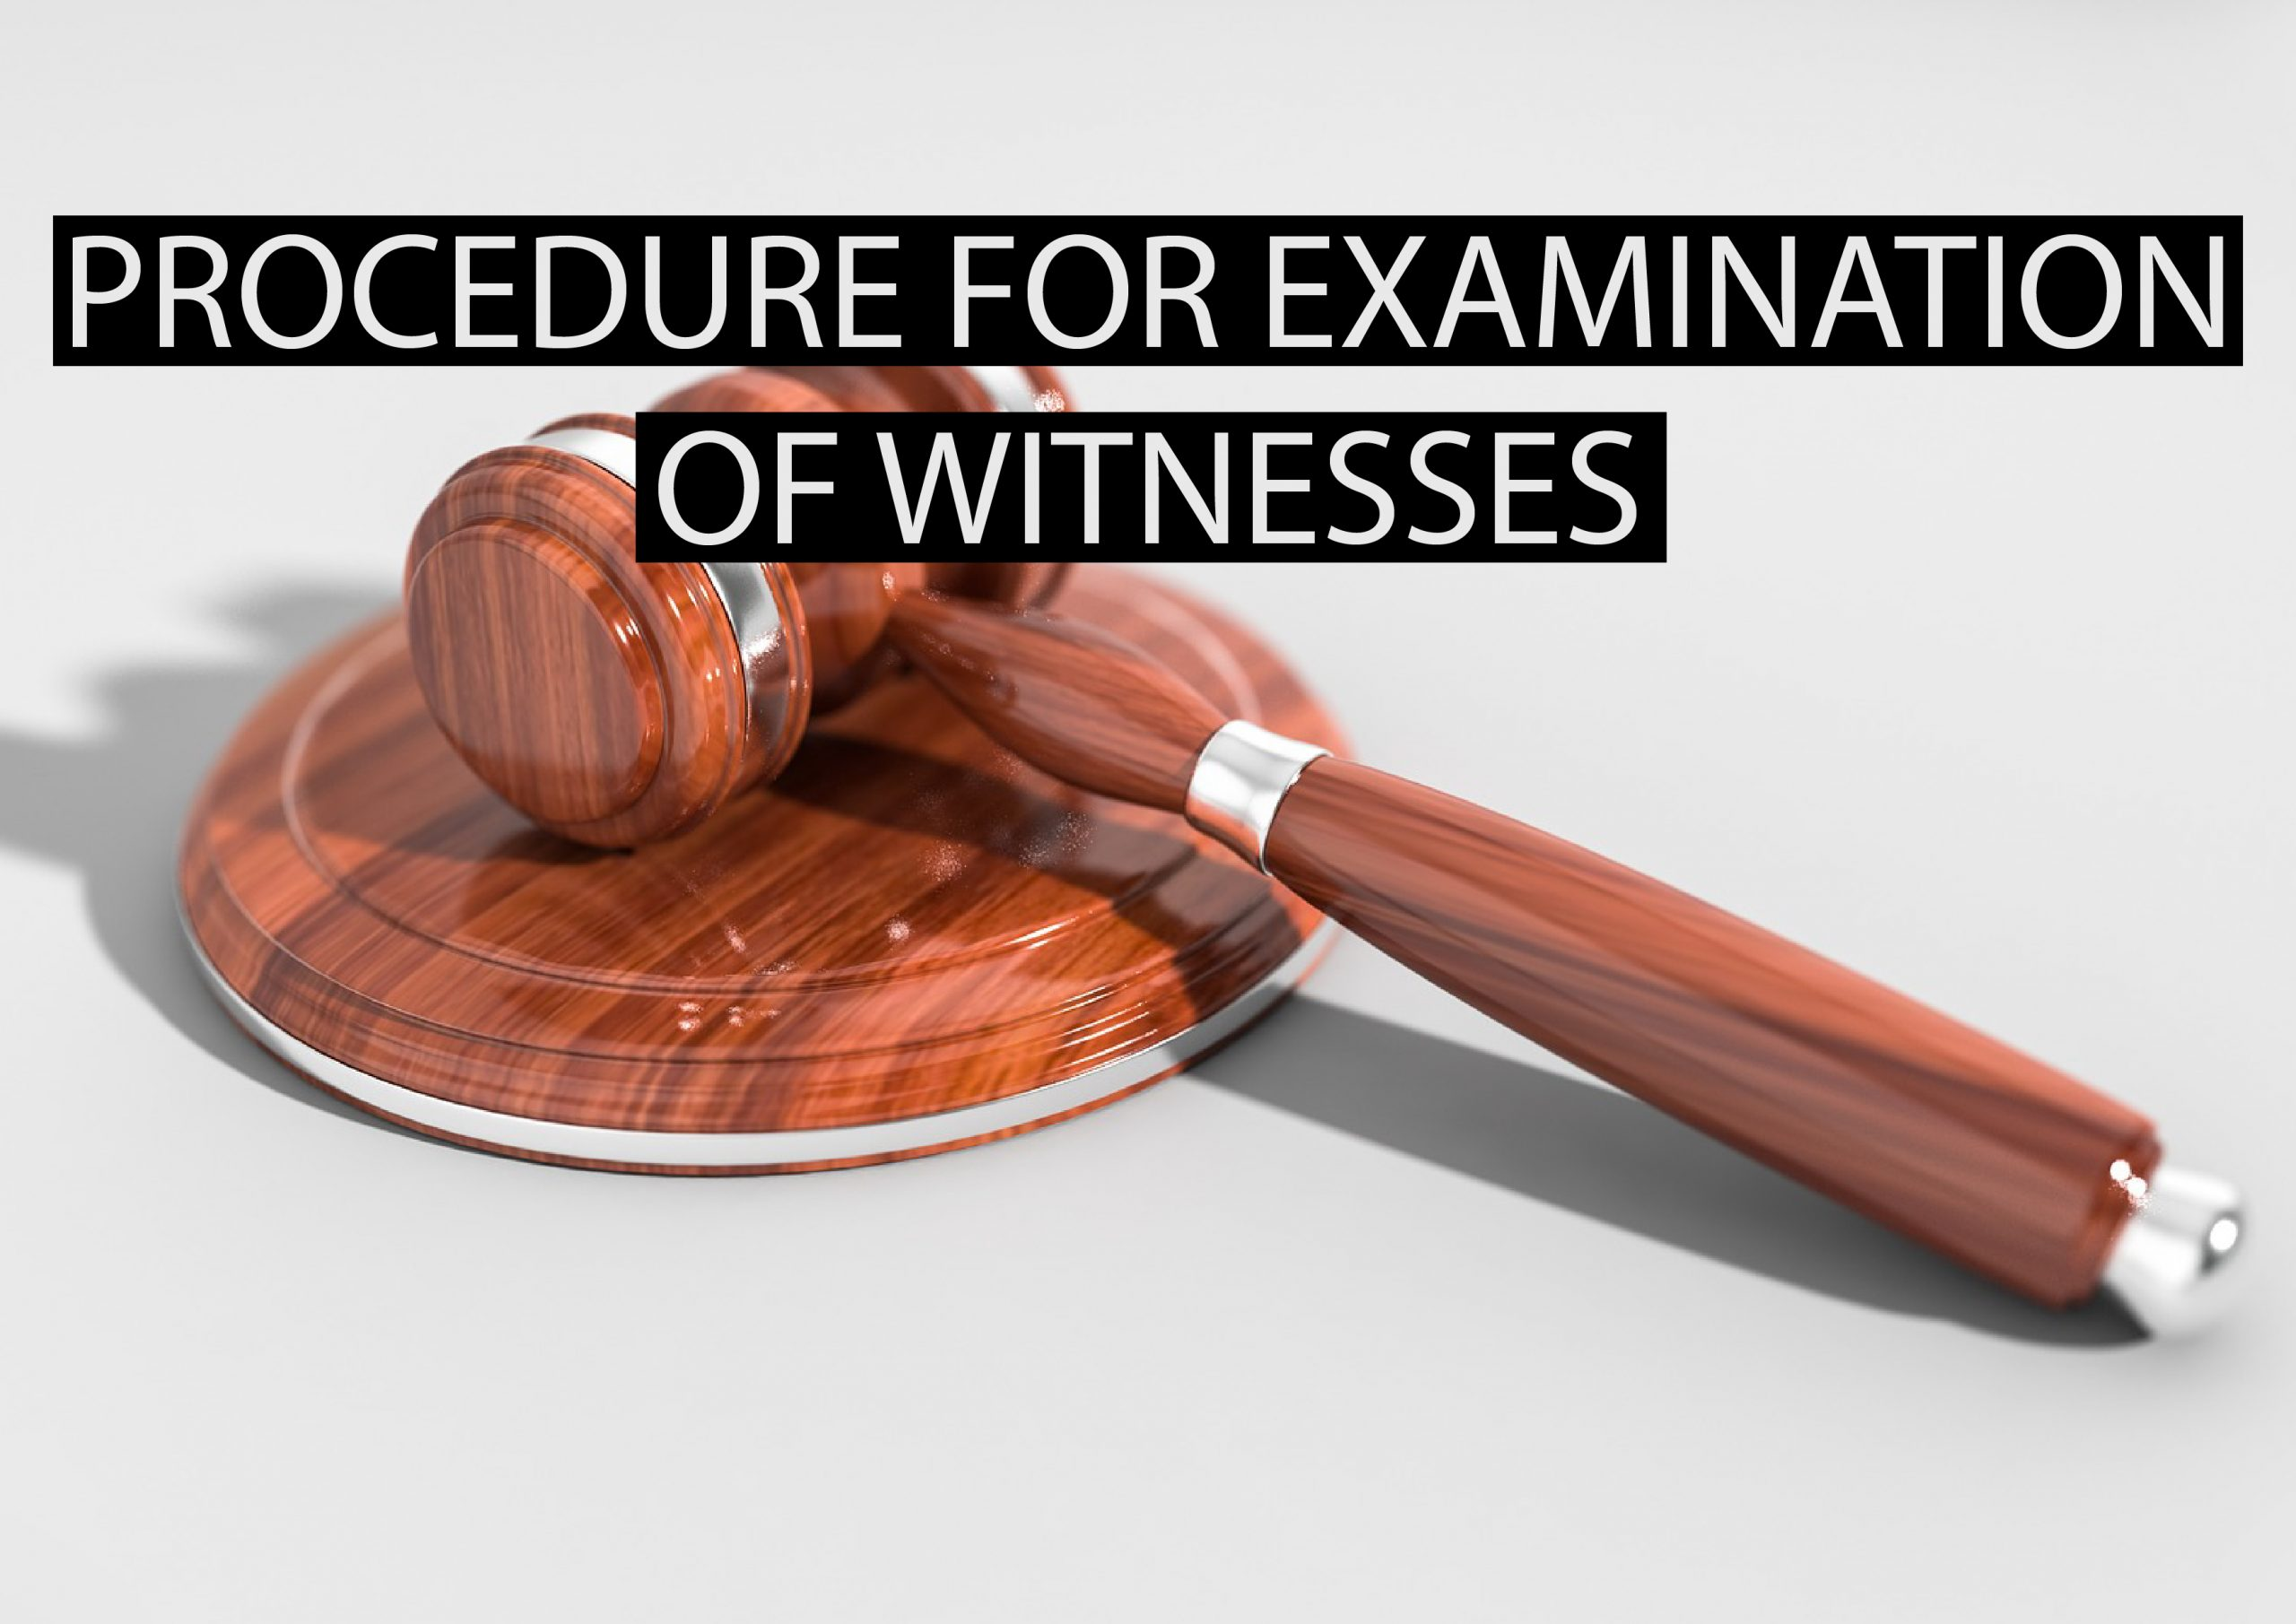 Procedure for Examination of Witnesses